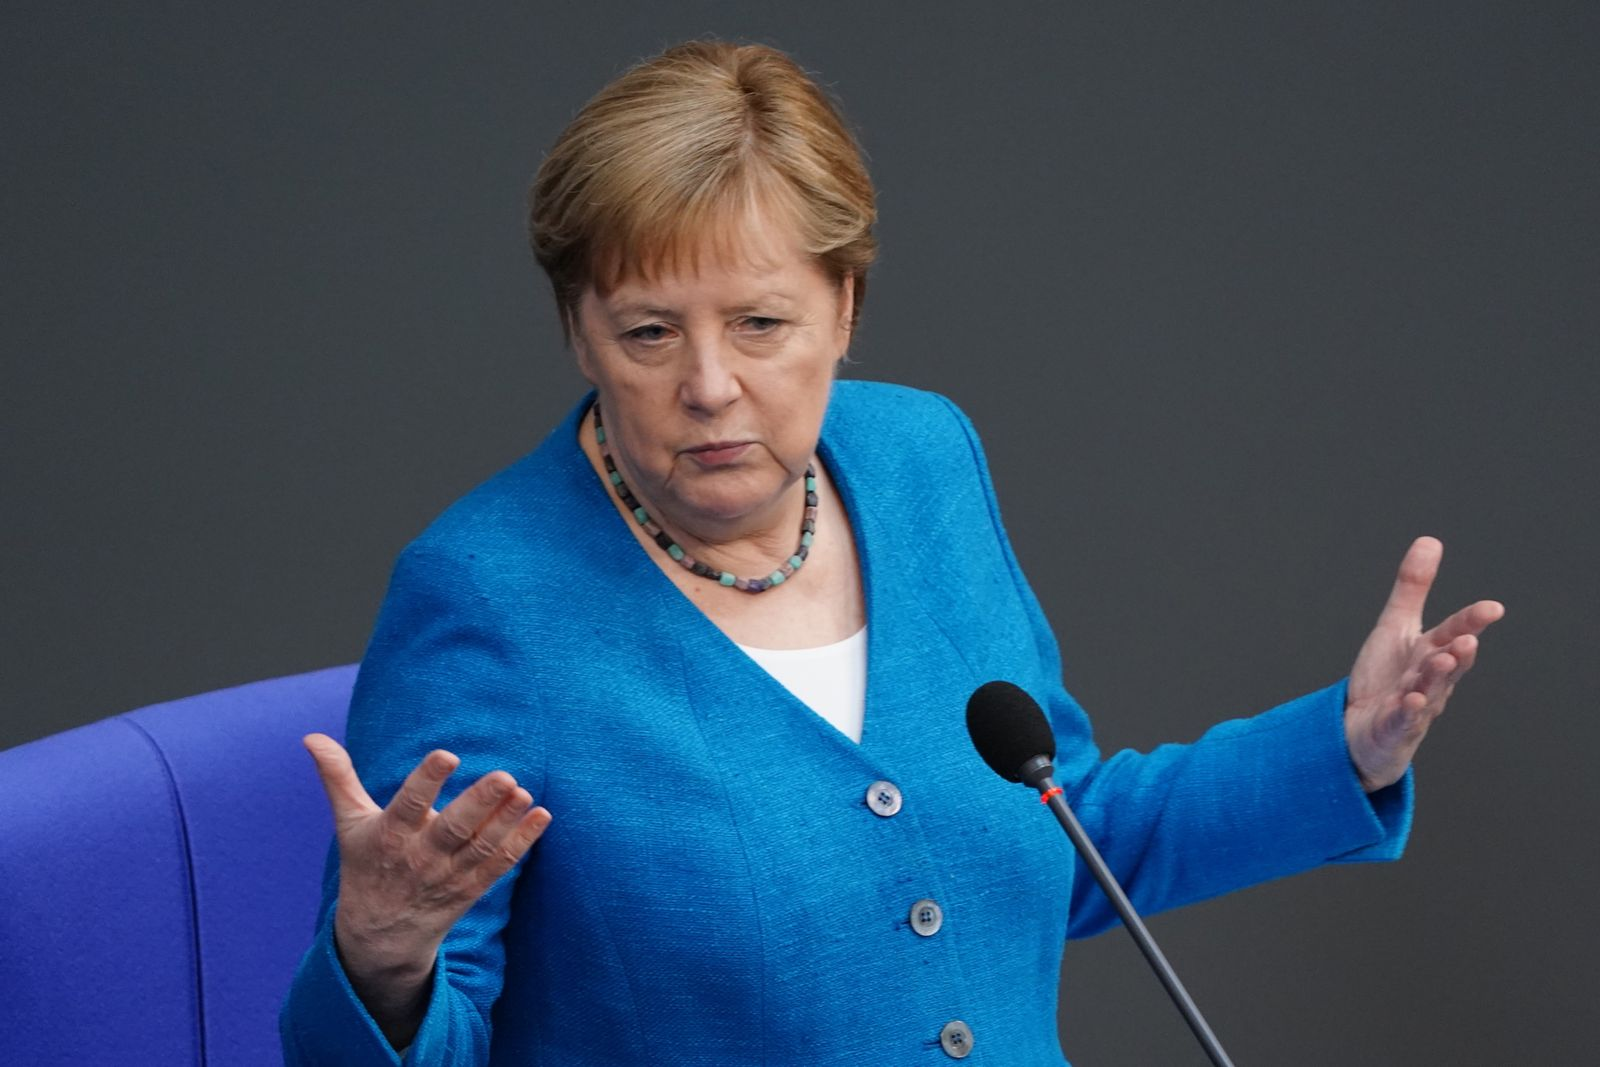 German Chancellor Angela Merkel answers questions to the German parliament